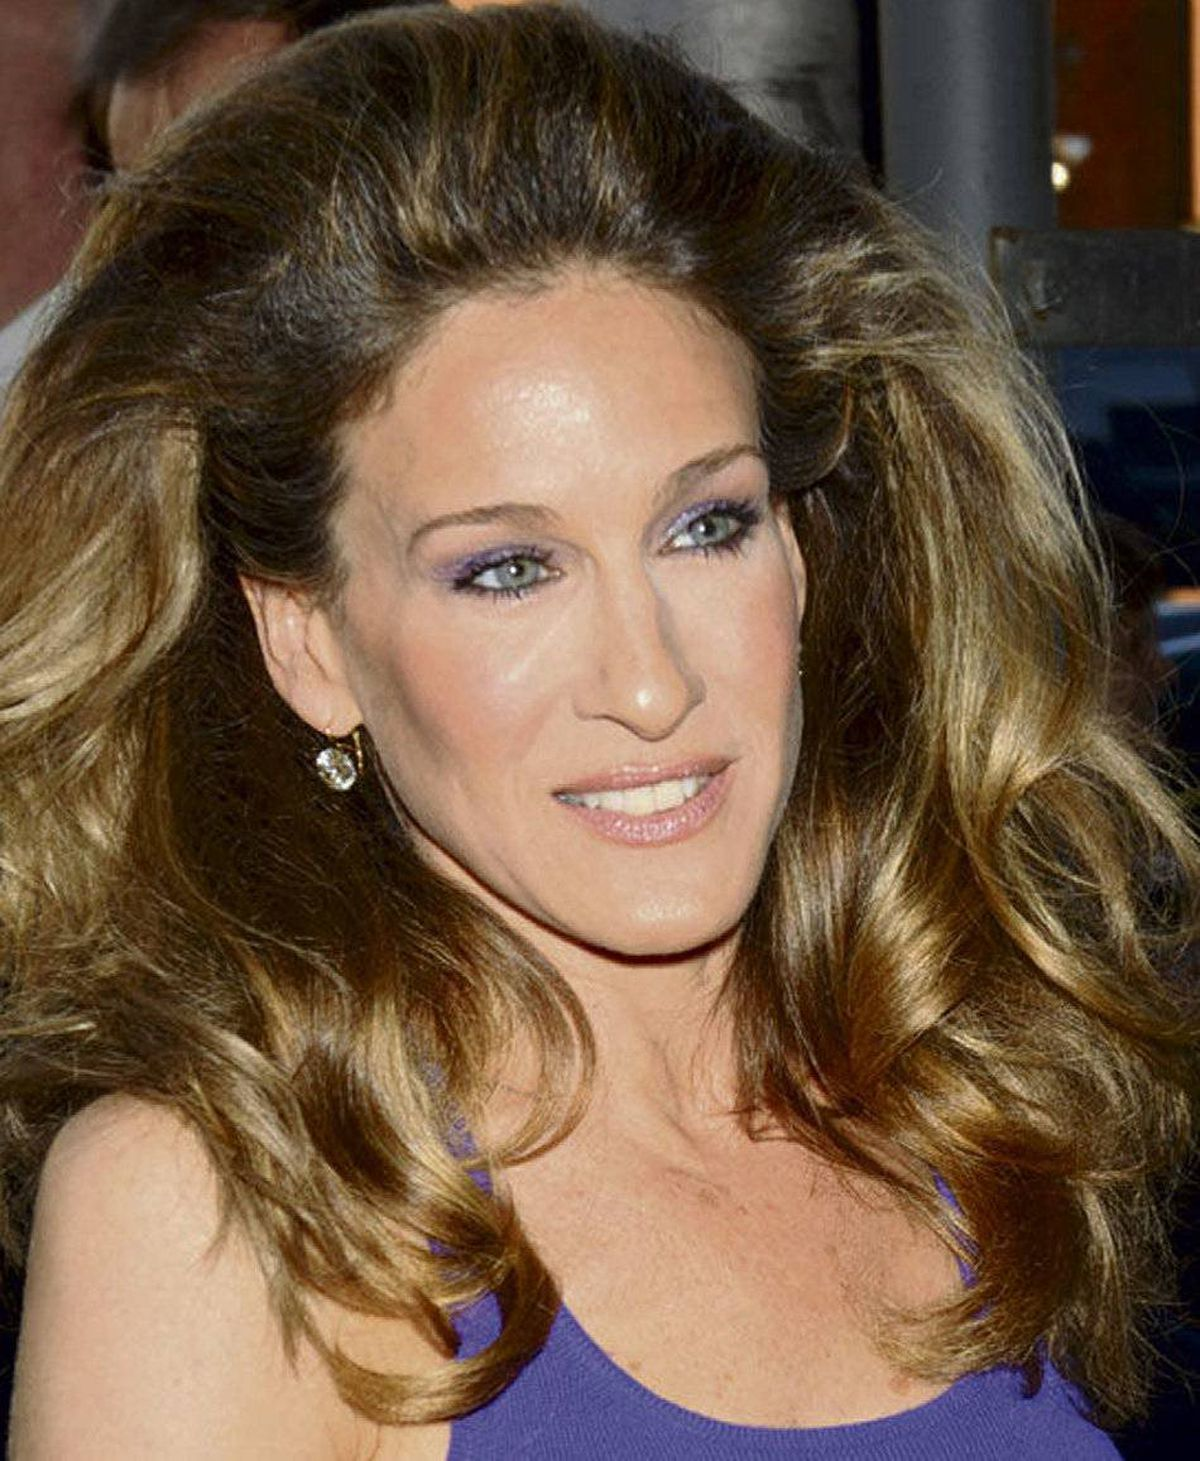 Inveterate trendsetter Sarah Jessica Parker stepped out recently sporting a vaguely eighties 'do with va-va-voom volume. The way she and a host of living dolls have been working mammoth manes of late calls to mind another big-haired working girl. Sarah Jessica Parker: Larger than life